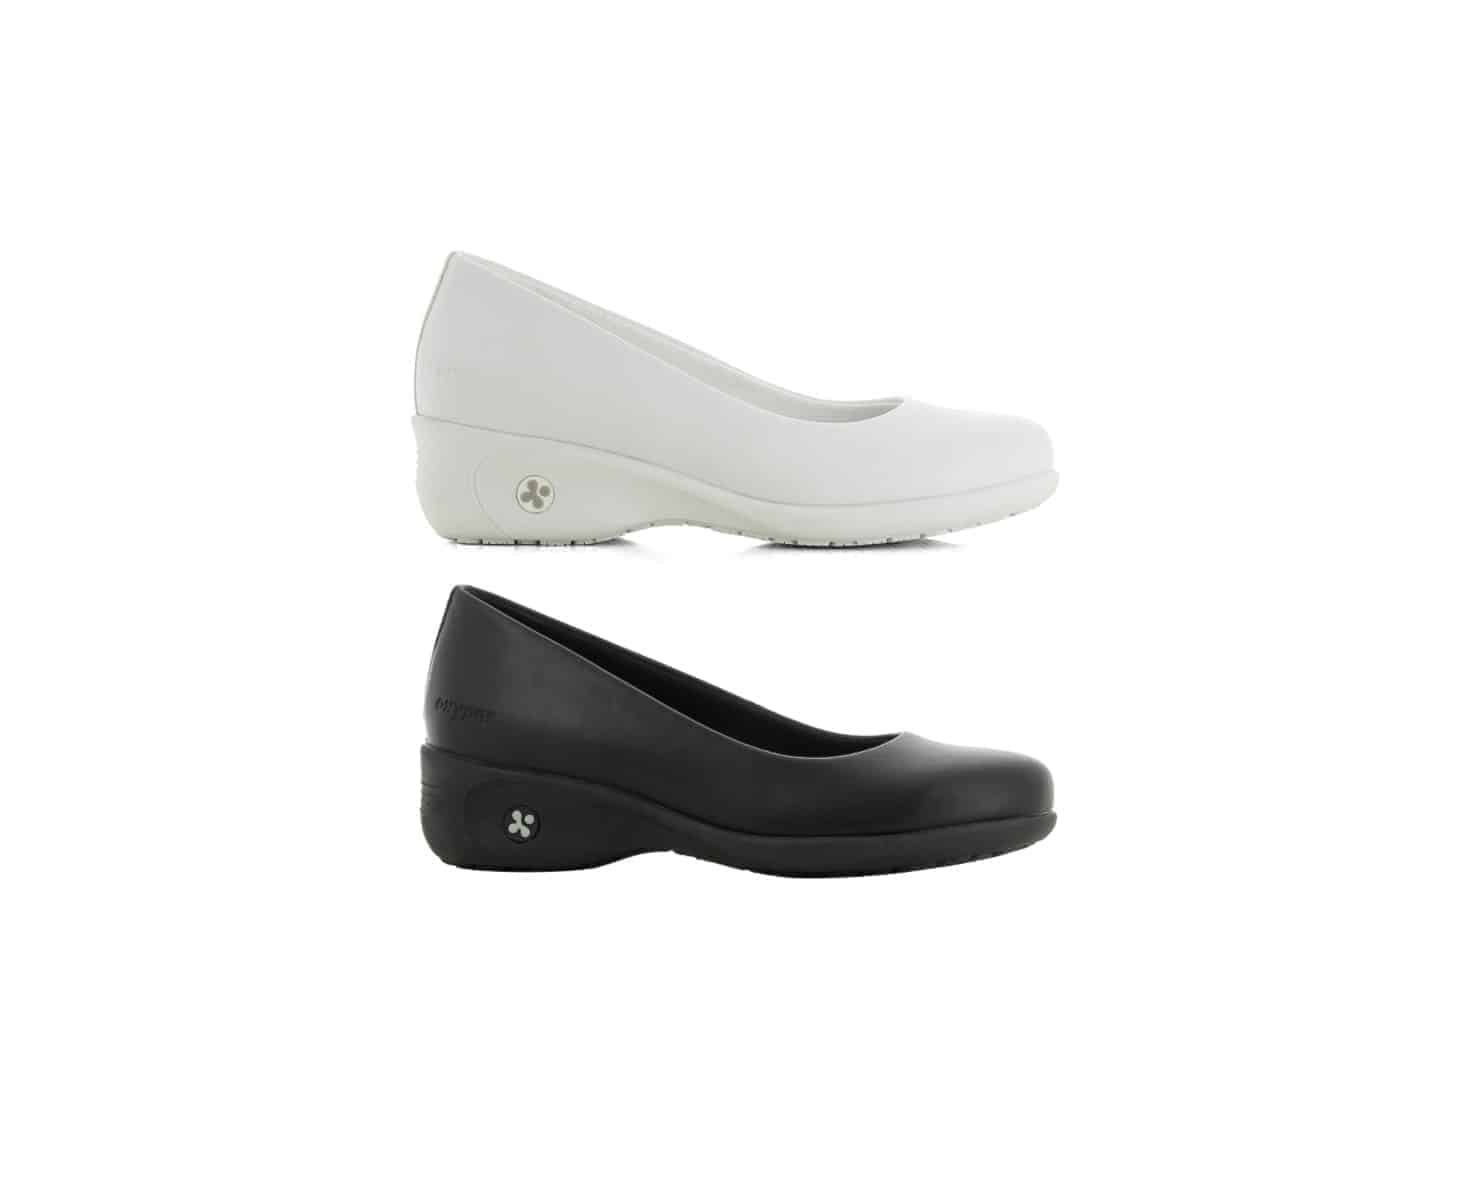 Oxypas 'Colette', Slip-on, Anti-slip, Anti-static, Court Style Nursing Shoe